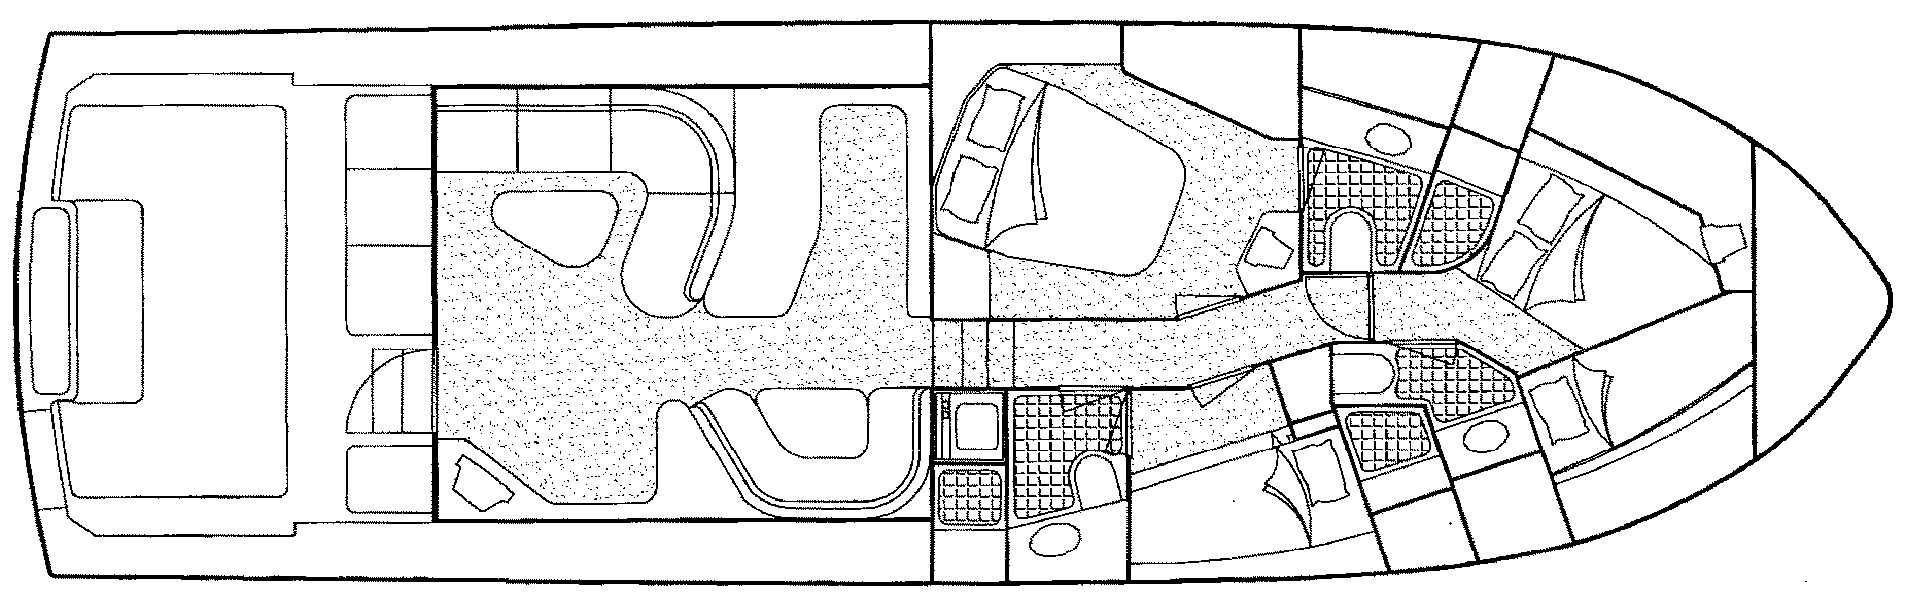 54 Convertible Floor Plan 2